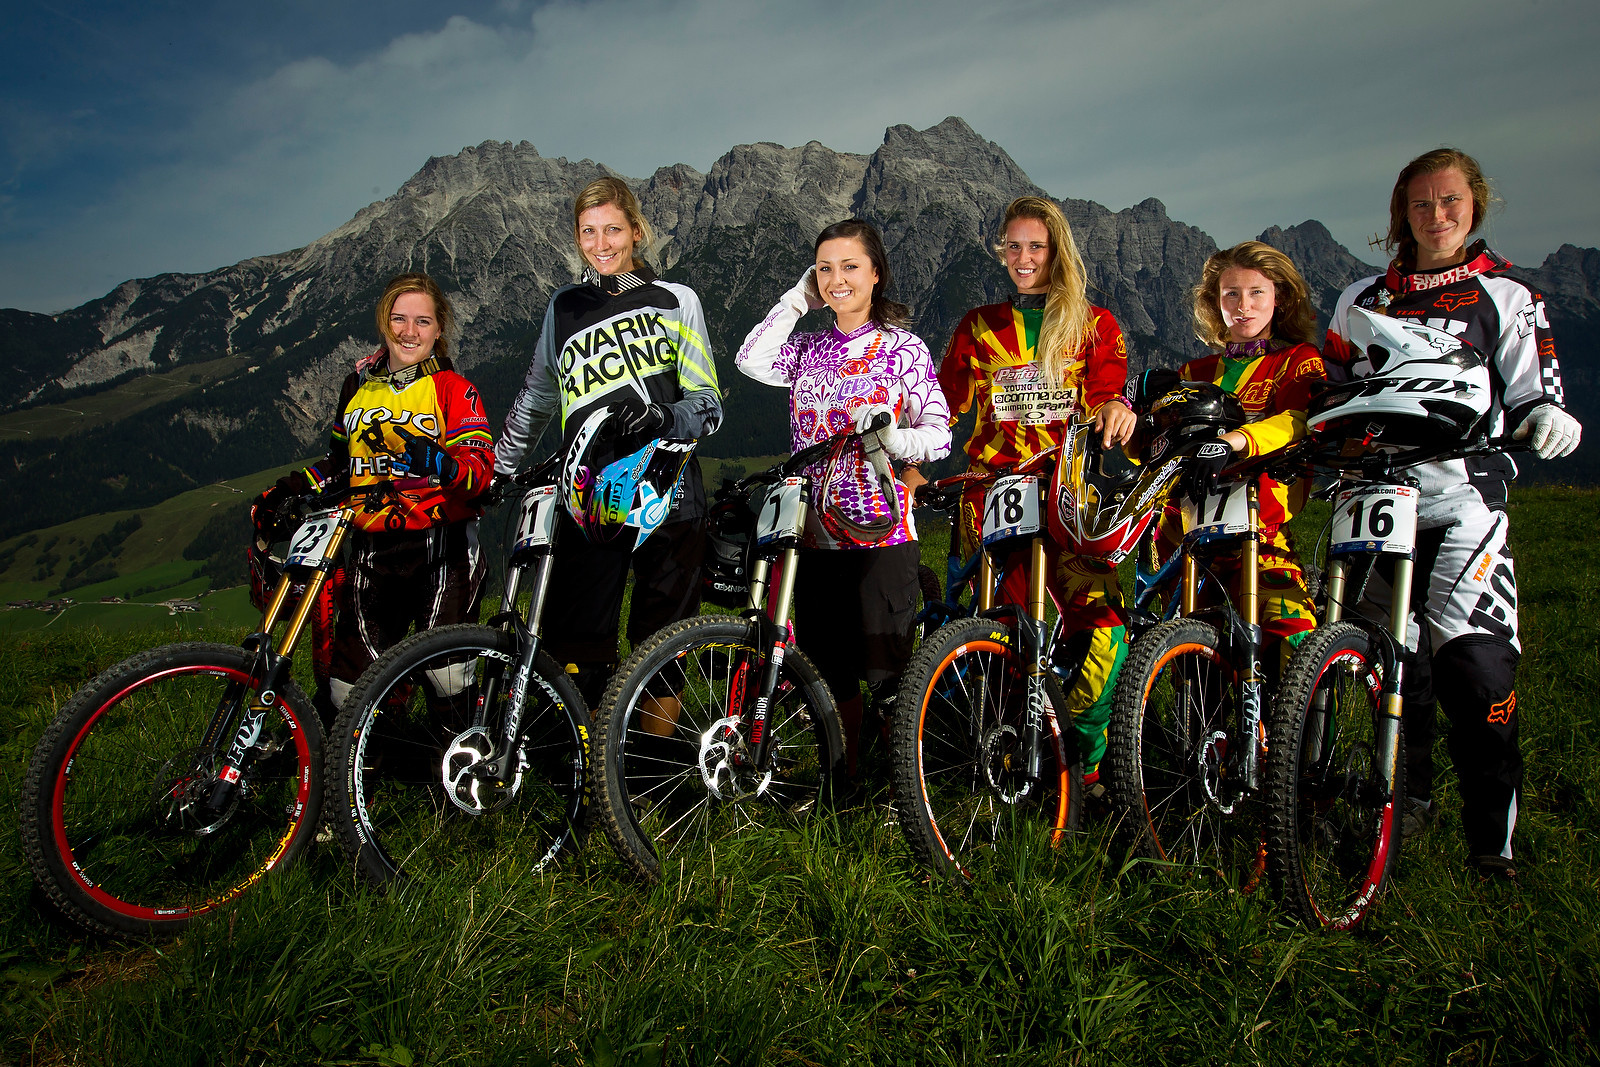 Canadian Hair Models - World Championships Riders and Bikes - Mountain Biking Pictures - Vital MTB